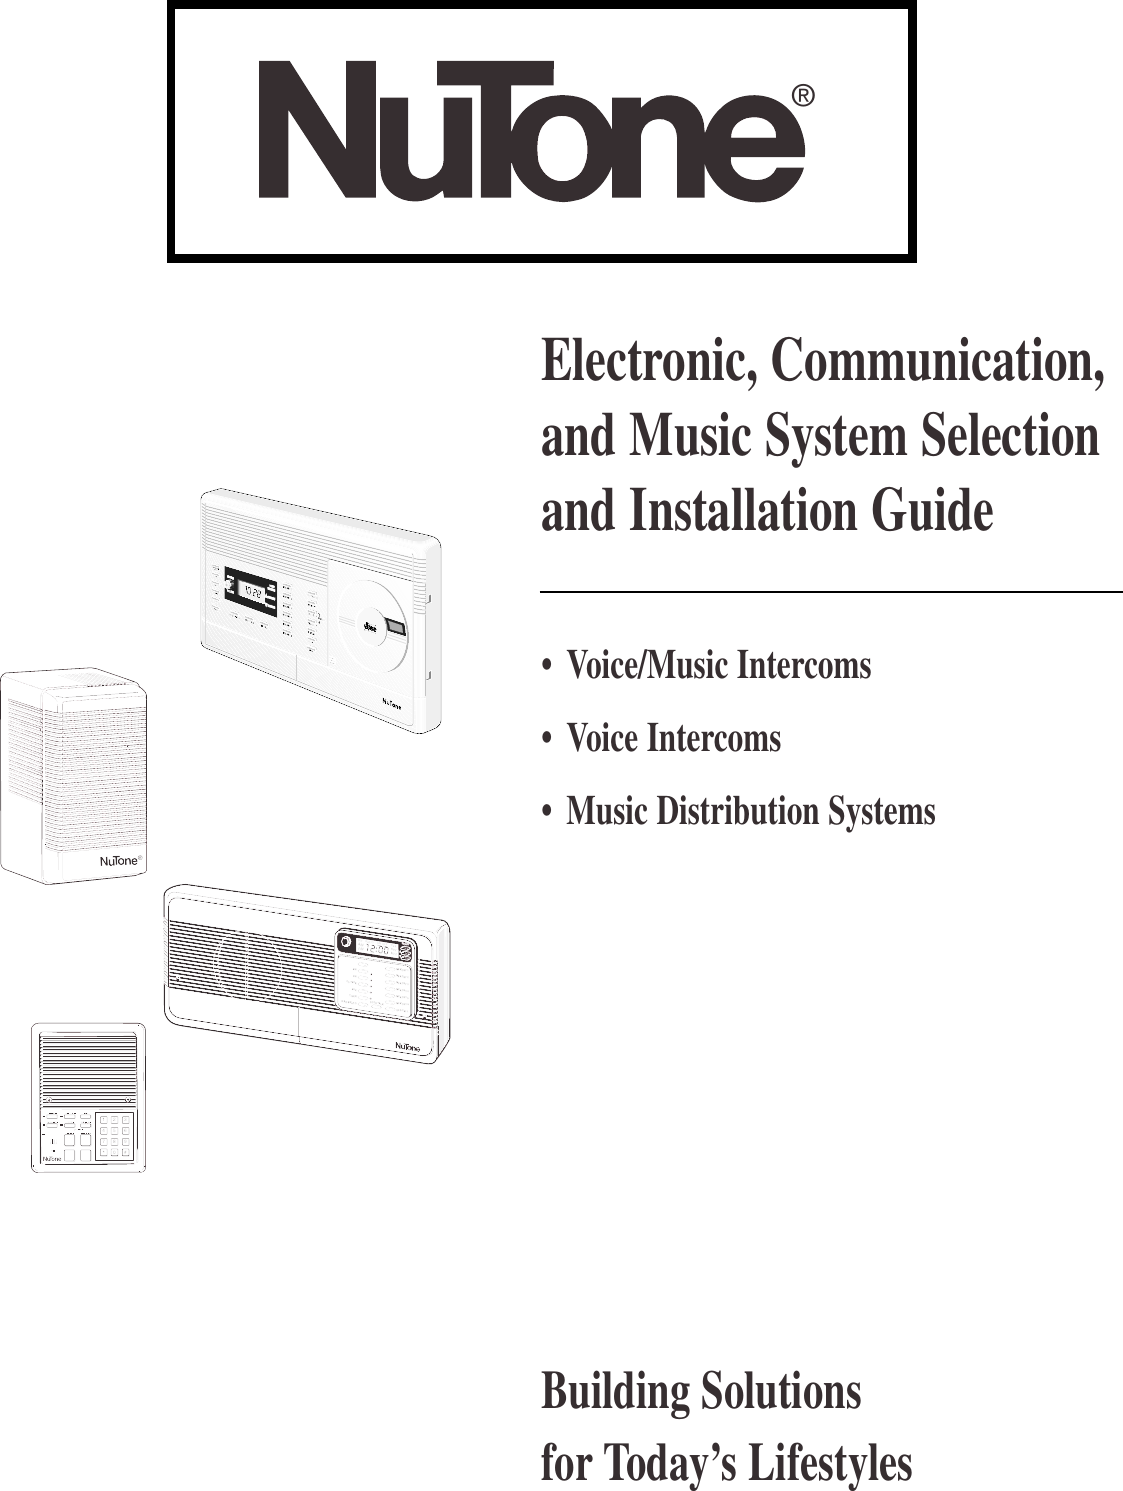 Nutone Intercom System Ik 25 Users Manual FS 1600 Guide on